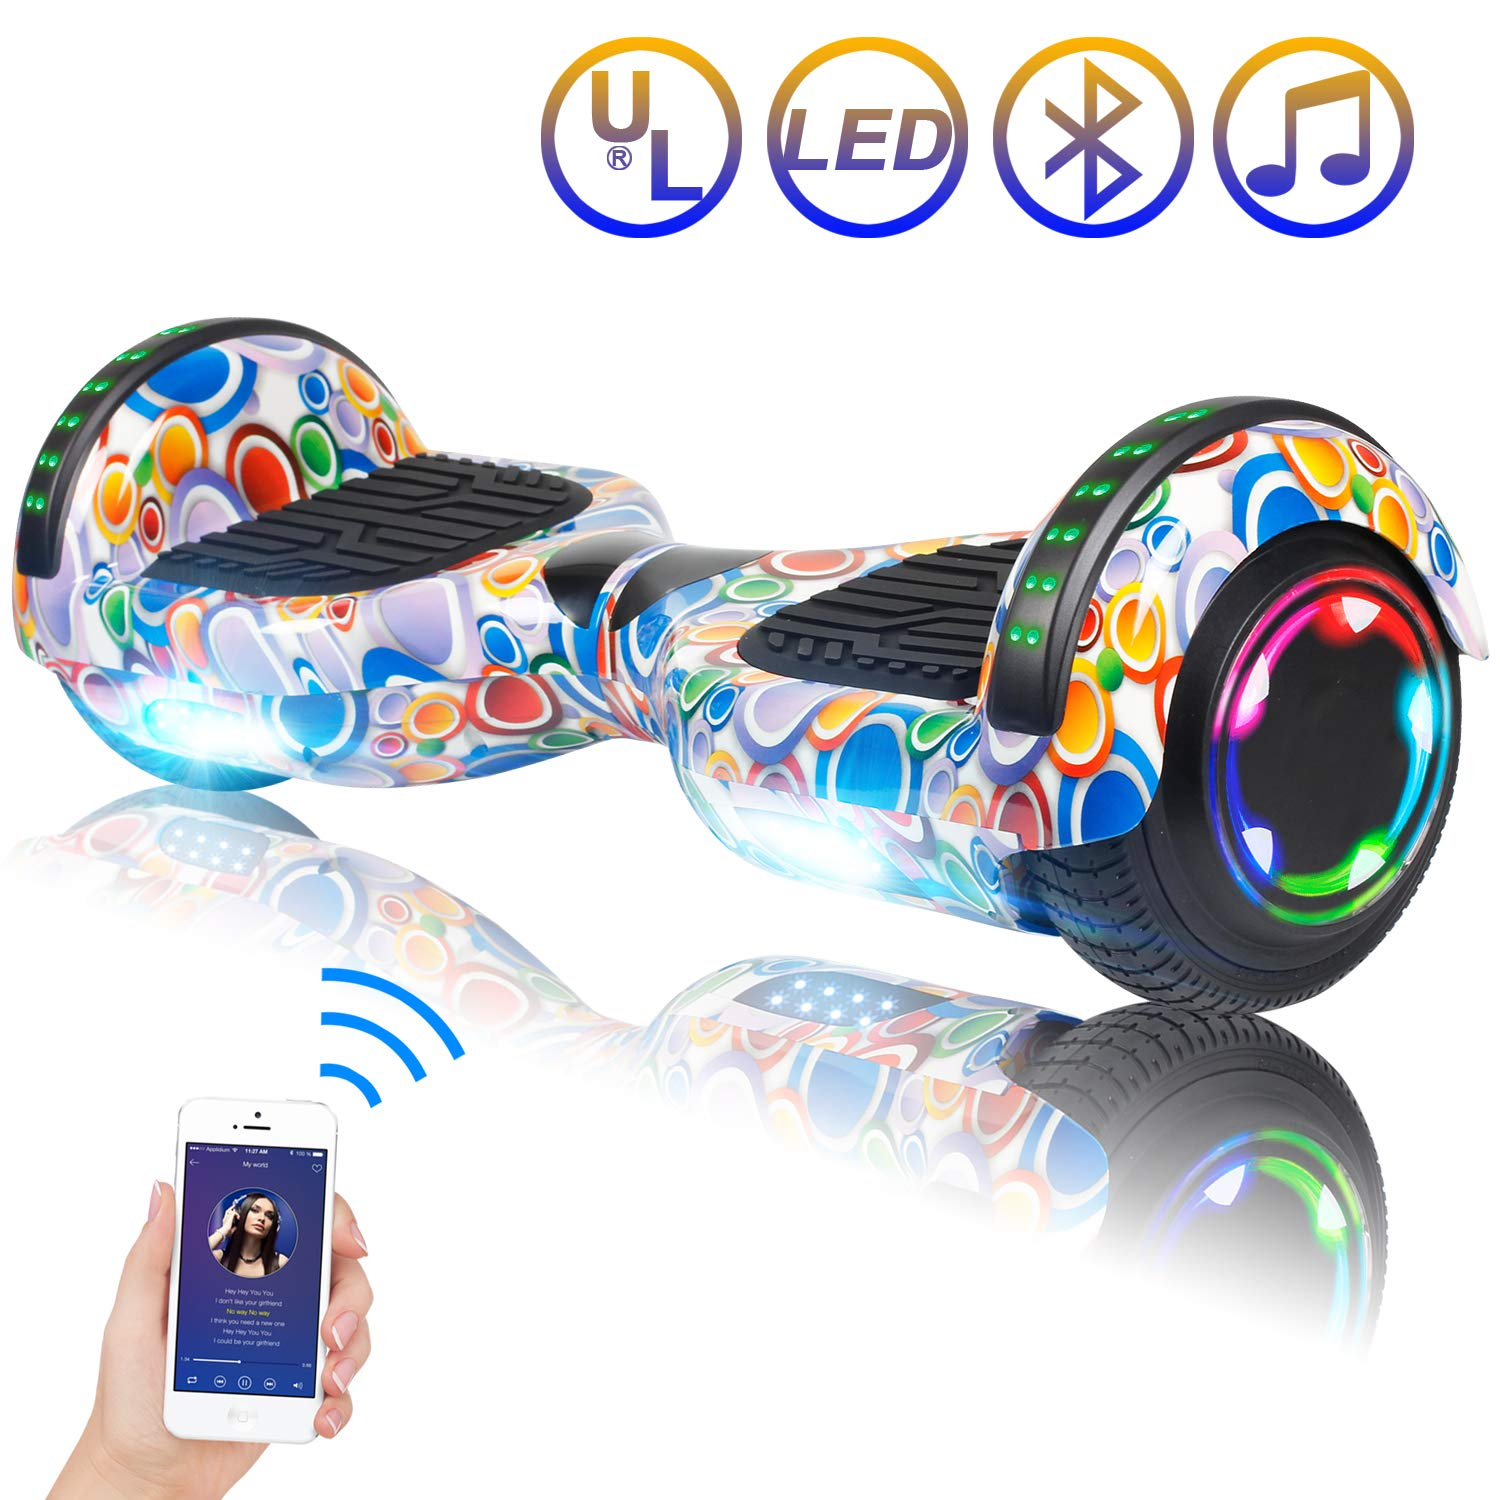 Hoverboard Self Balancing Scooter 6.5'' Two-Wheel Self Balancing Hoverboard with Bluetooth Speaker and LED Lights Electric Scooter for Adult Kids Gift UL 2272 Certified Fun Edition - Colorful Bubbles